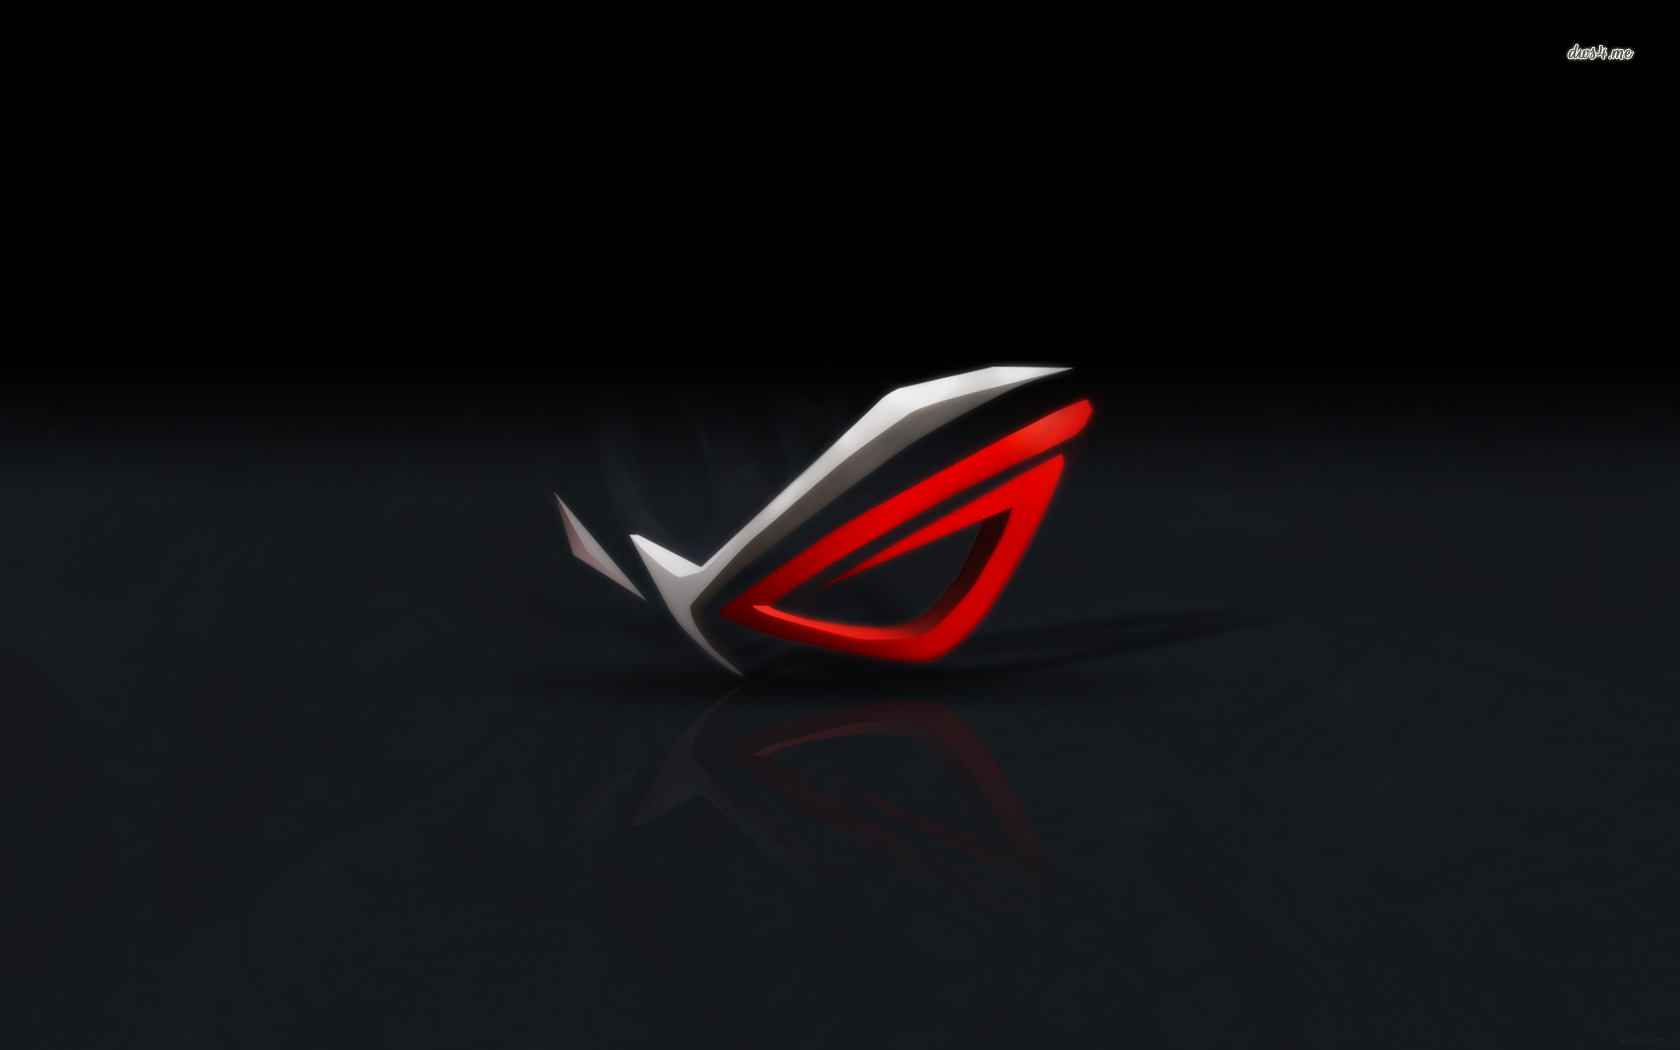 Asus ROG wallpaper   Computer wallpapers   1106 1680x1050